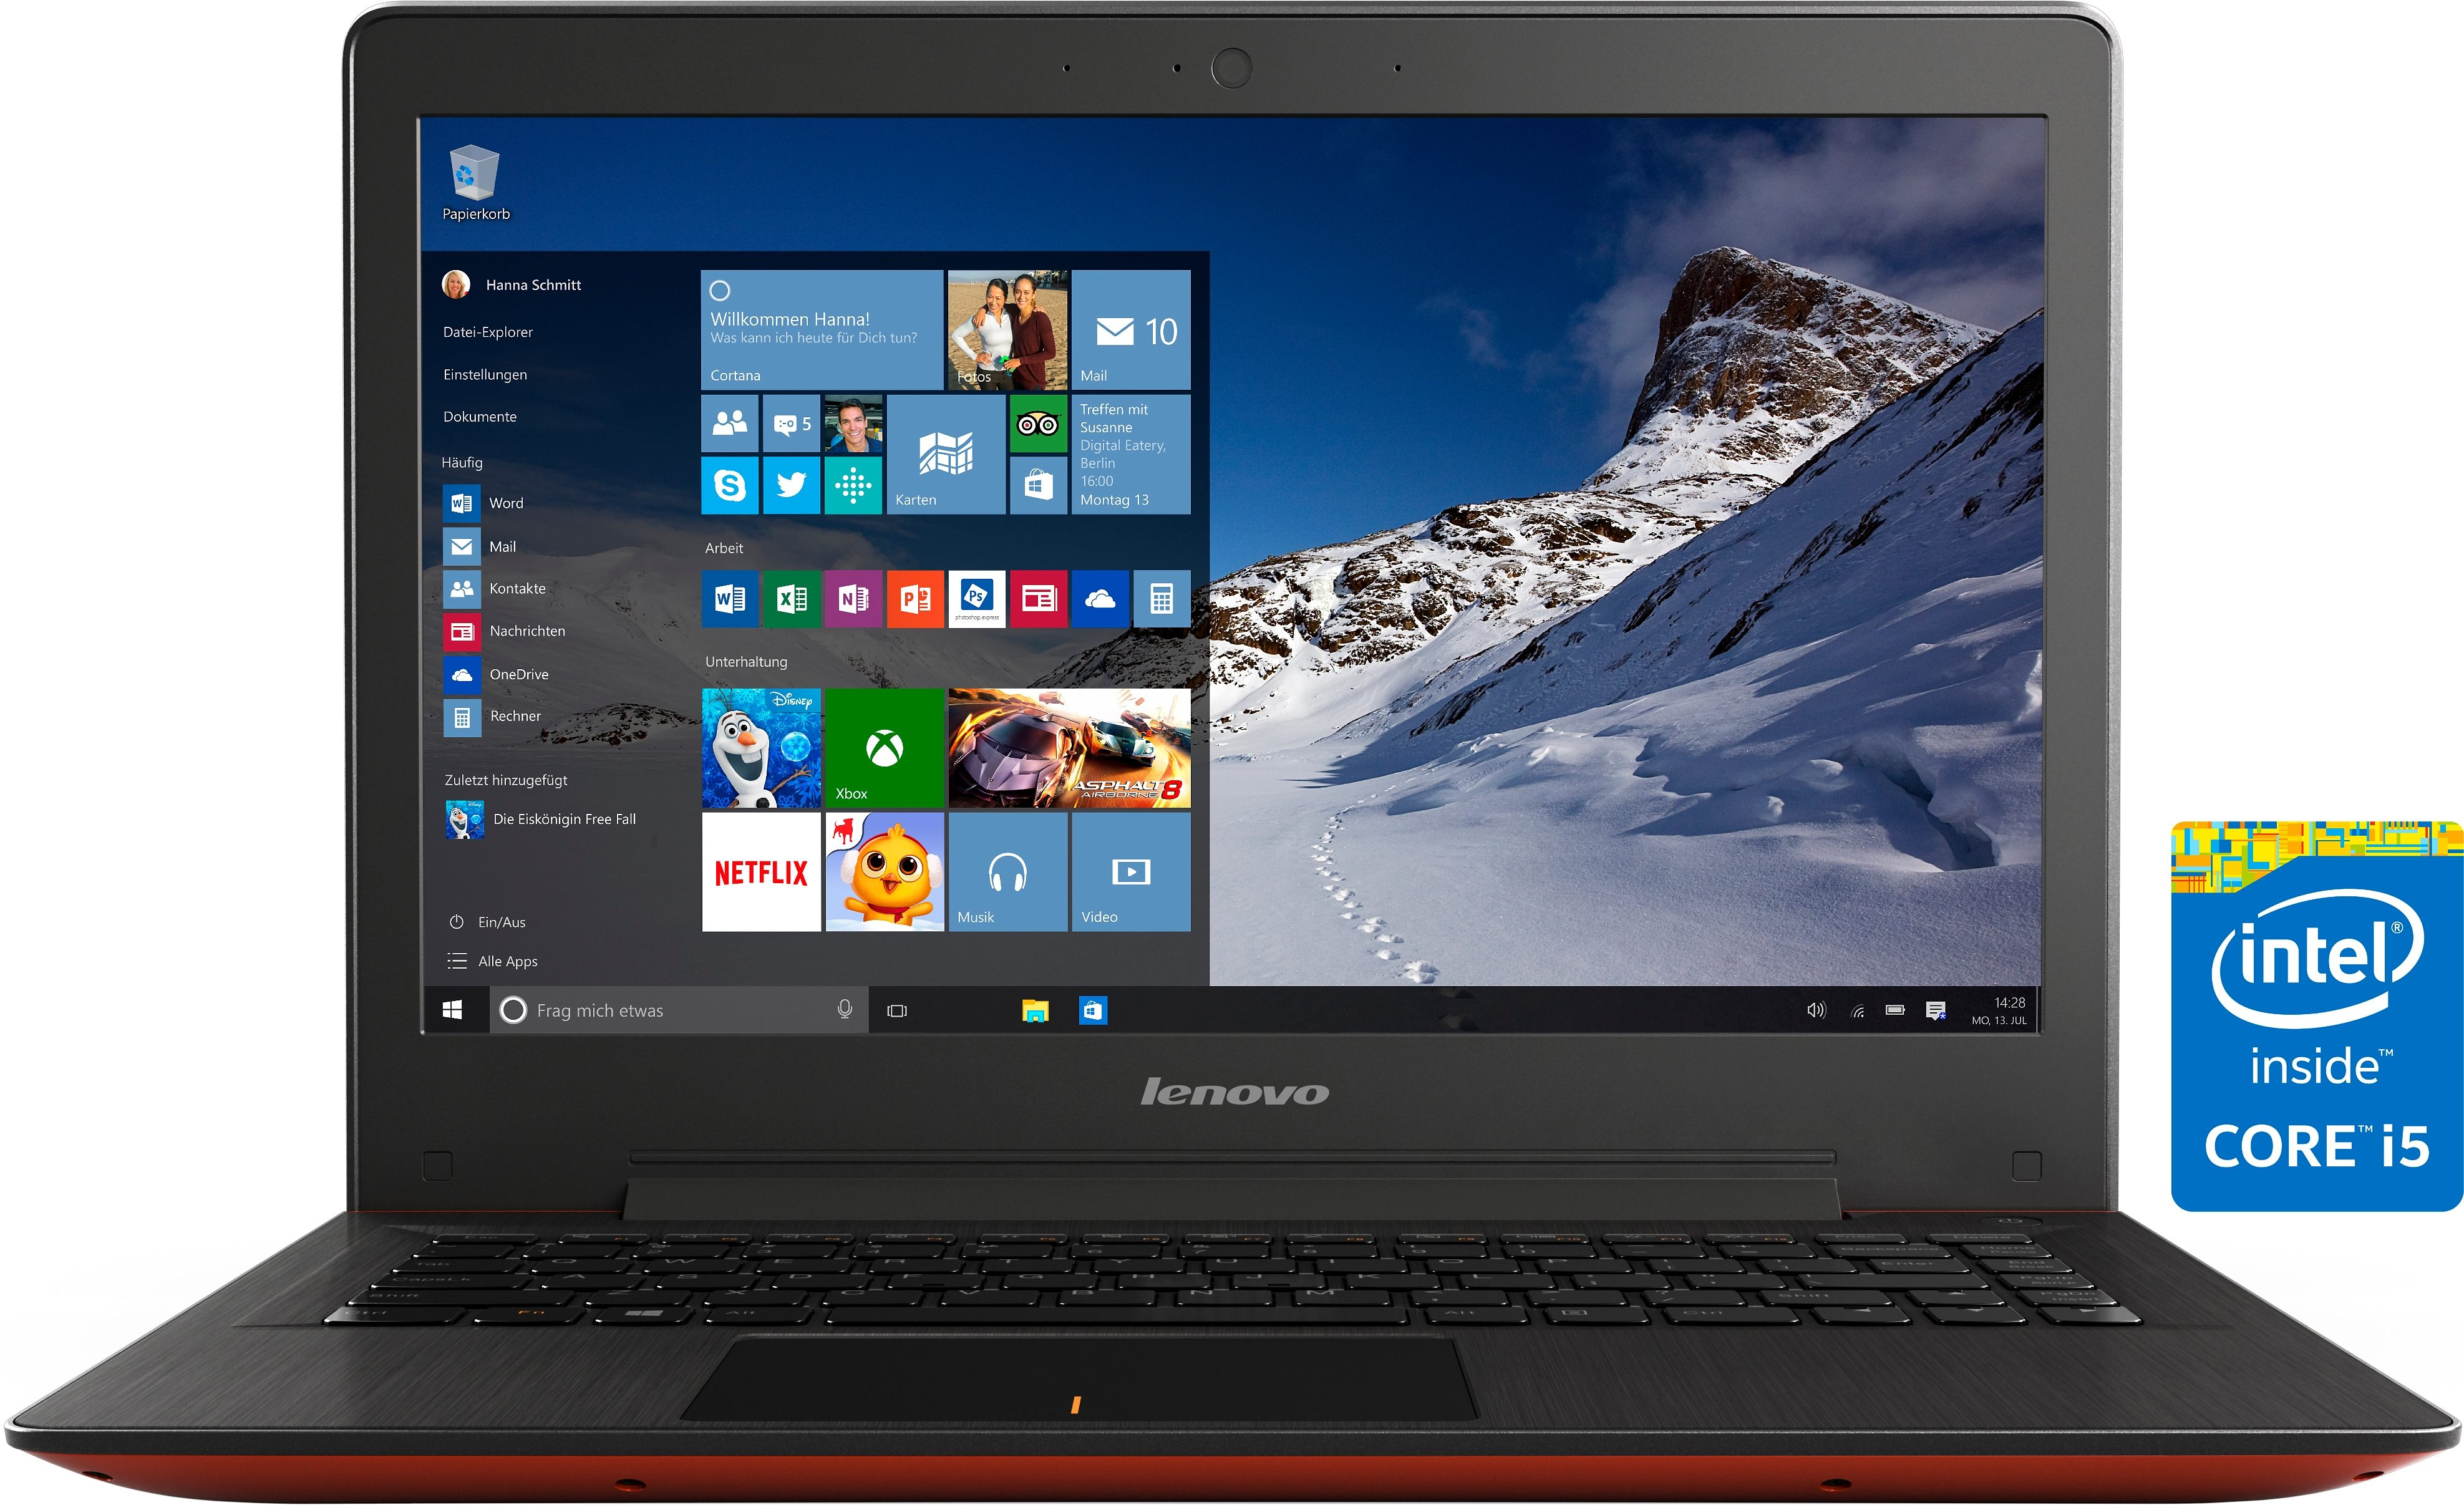 Lenovo U31-70 Notebook, Intel® Core™ i5, 33,7 cm (13,3 Zoll), 128 GB Speicher, 4096 MB DDR3L-SDRAM